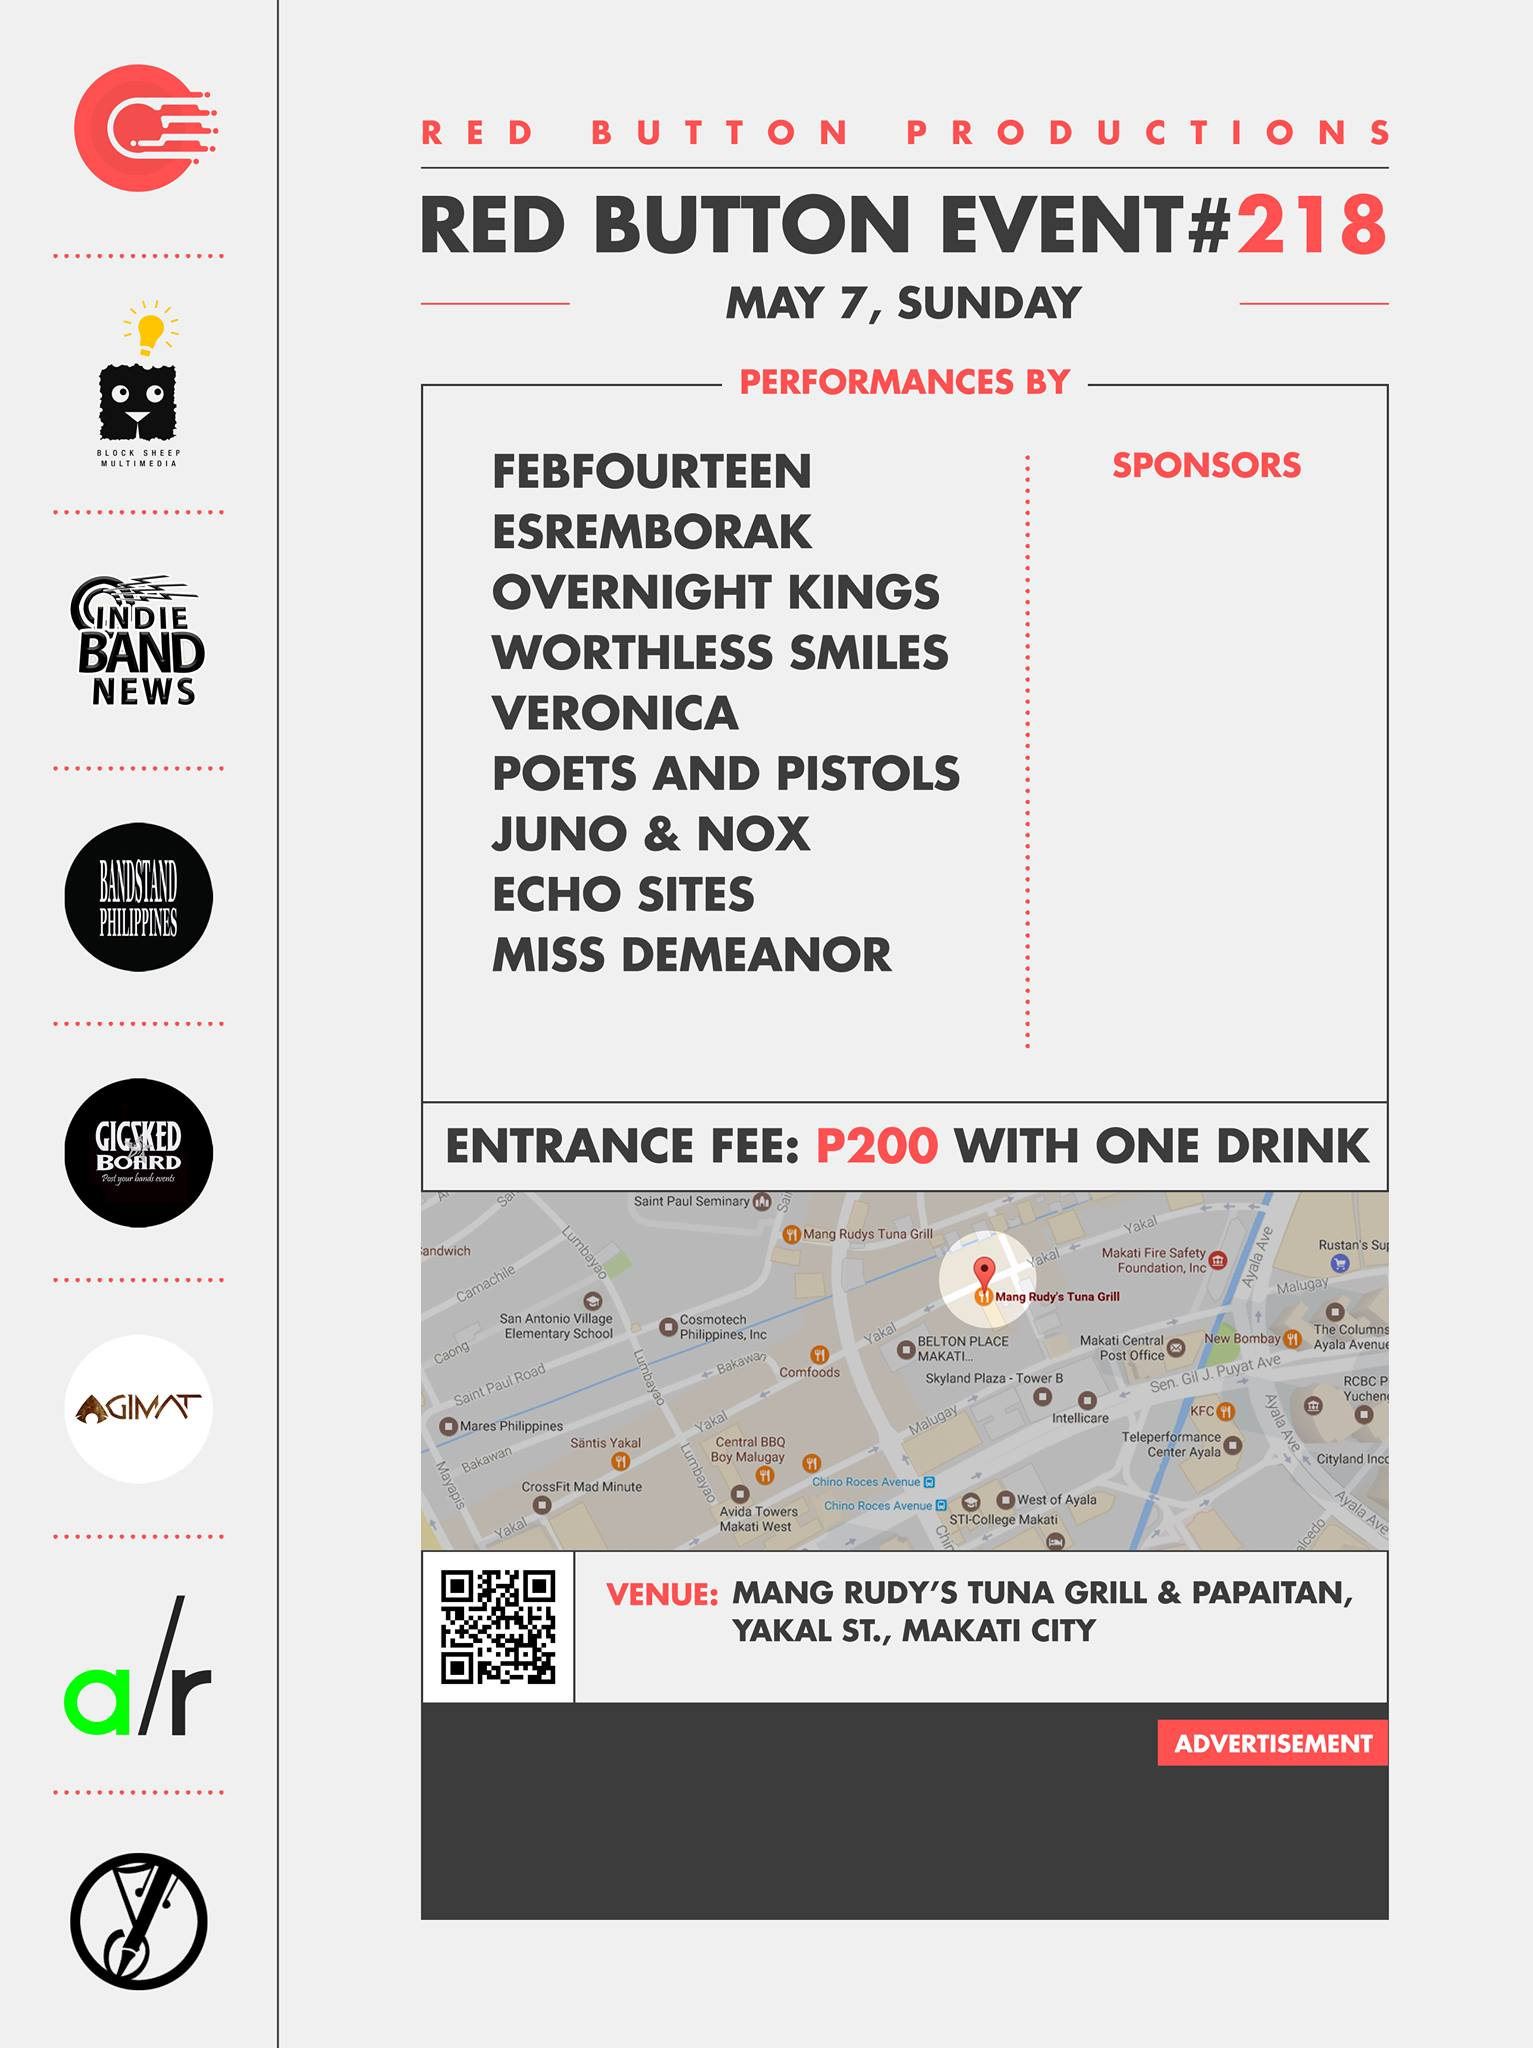 Red Button Productions Like This Page · Yesterday · Edited · Red Button Productions present Red Button Event #218 May 7, Sunday at Mang Rudy's Tuna Grill And Papaitan, Yakal Street Makati Entrance Fee: P200 with 1 drink performances by: https://www.facebook.com/events/1536001293107776/ Febfourteen Esremborak Overnight Kings Worthless Smiles Veronica Poets and Pistols Finish Strong Echo Sites Miss Demeanor Event Link: Media Partners: Block Sheep Multimedia Indie Band News Bandstand Philippines Gig Sked Board Agimat: Sining at Kulturang Pinoy Songwriters Philippines Adobo Radio — at Mang Rudy's Tuna Grill And Papaitan.